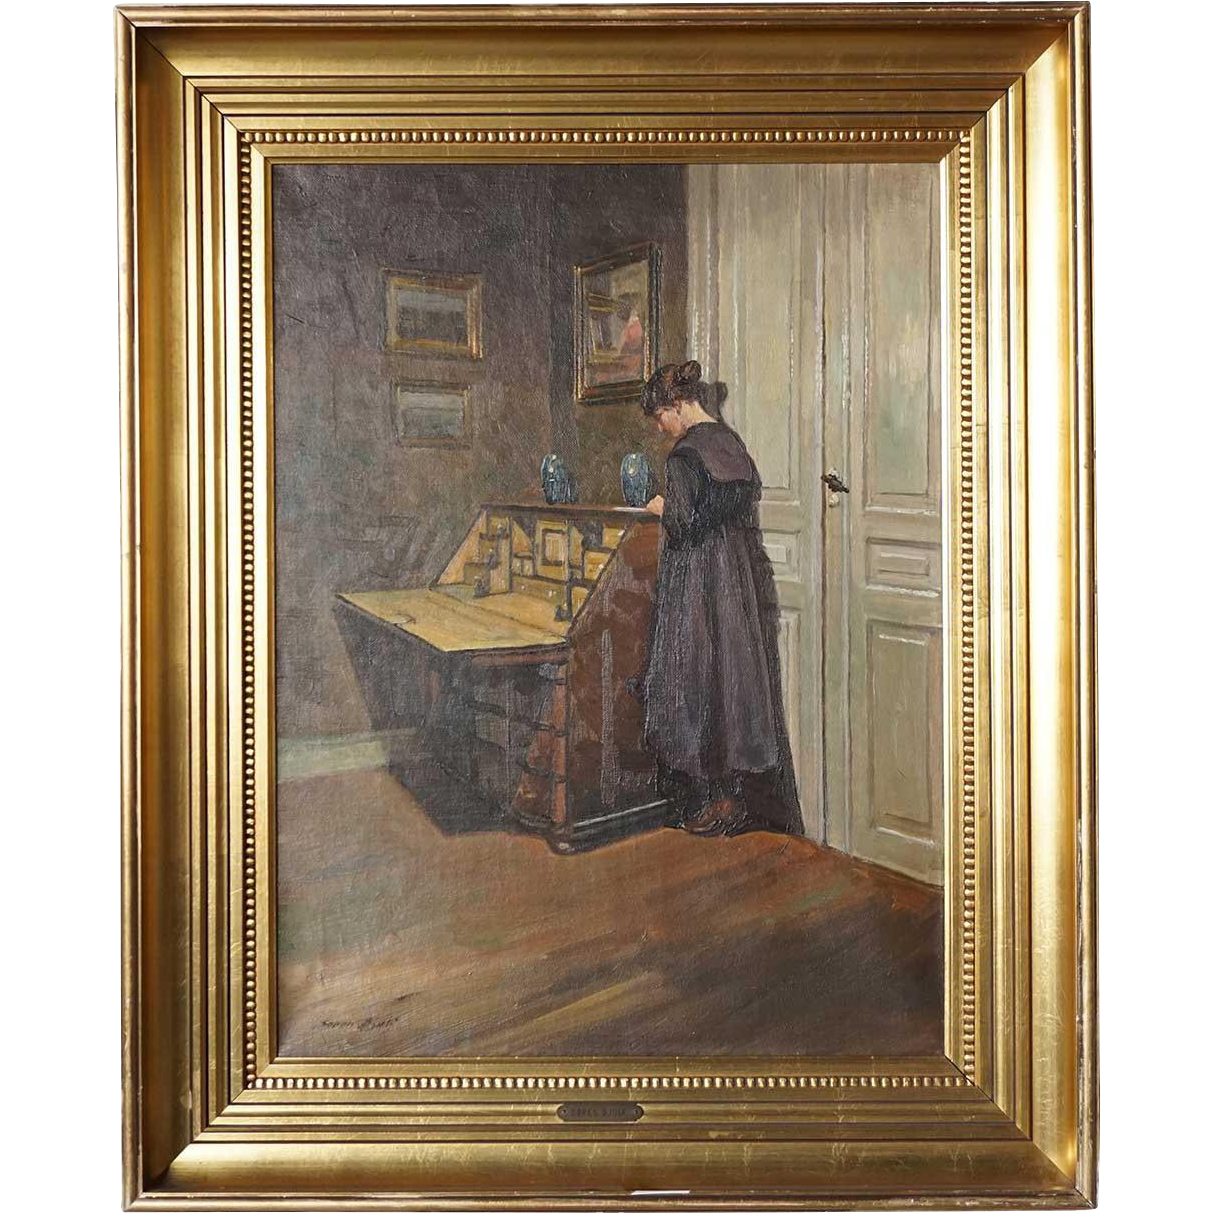 SOREN CHRISTIAN BJULF Oil on Canvas Painting, Interior with a Woman at her Bureau